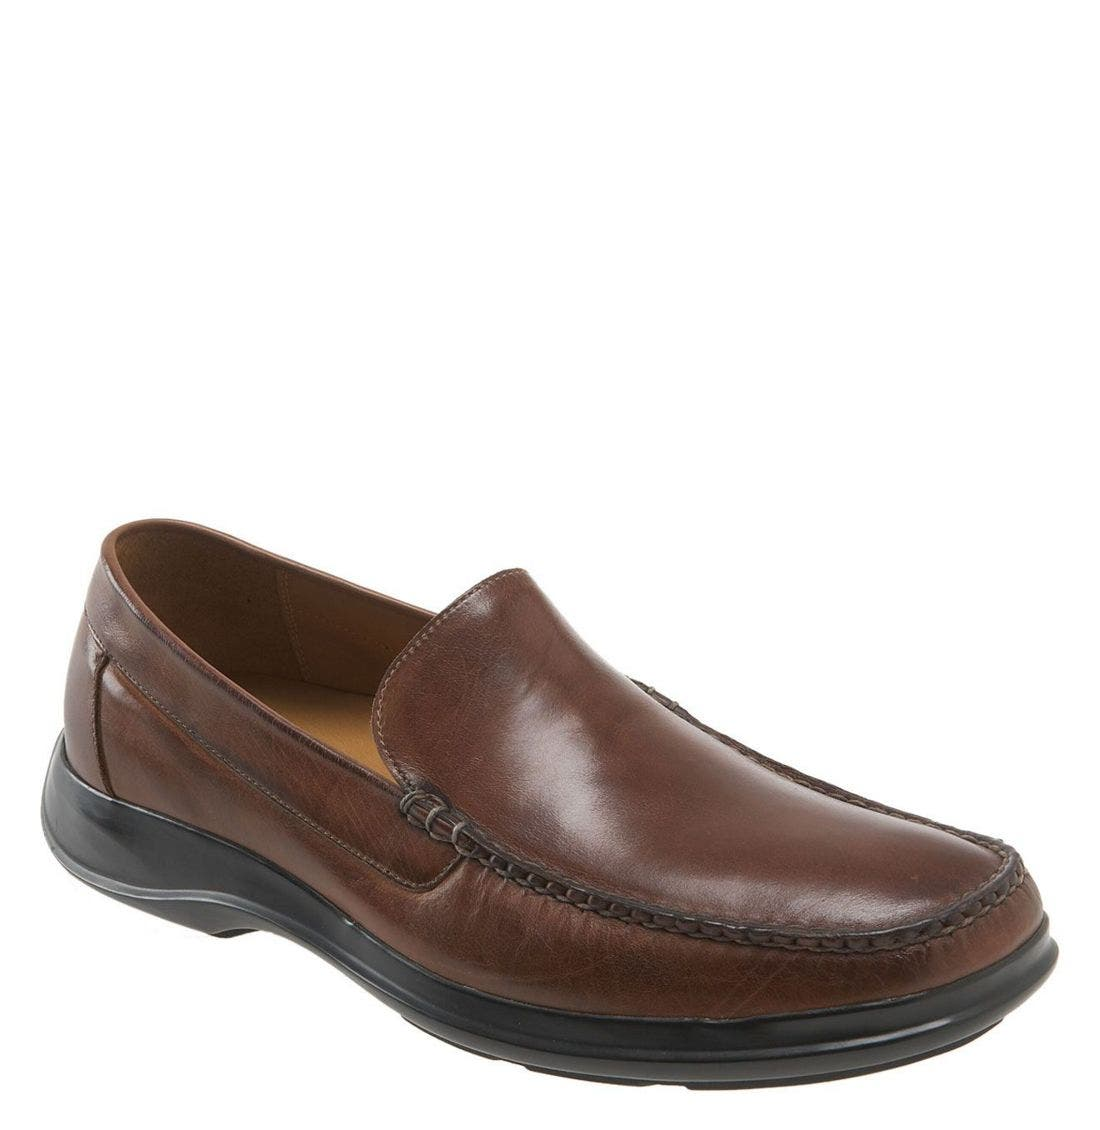 Main Image - Cole Haan 'Air Dempsey Venetian' Slip-On